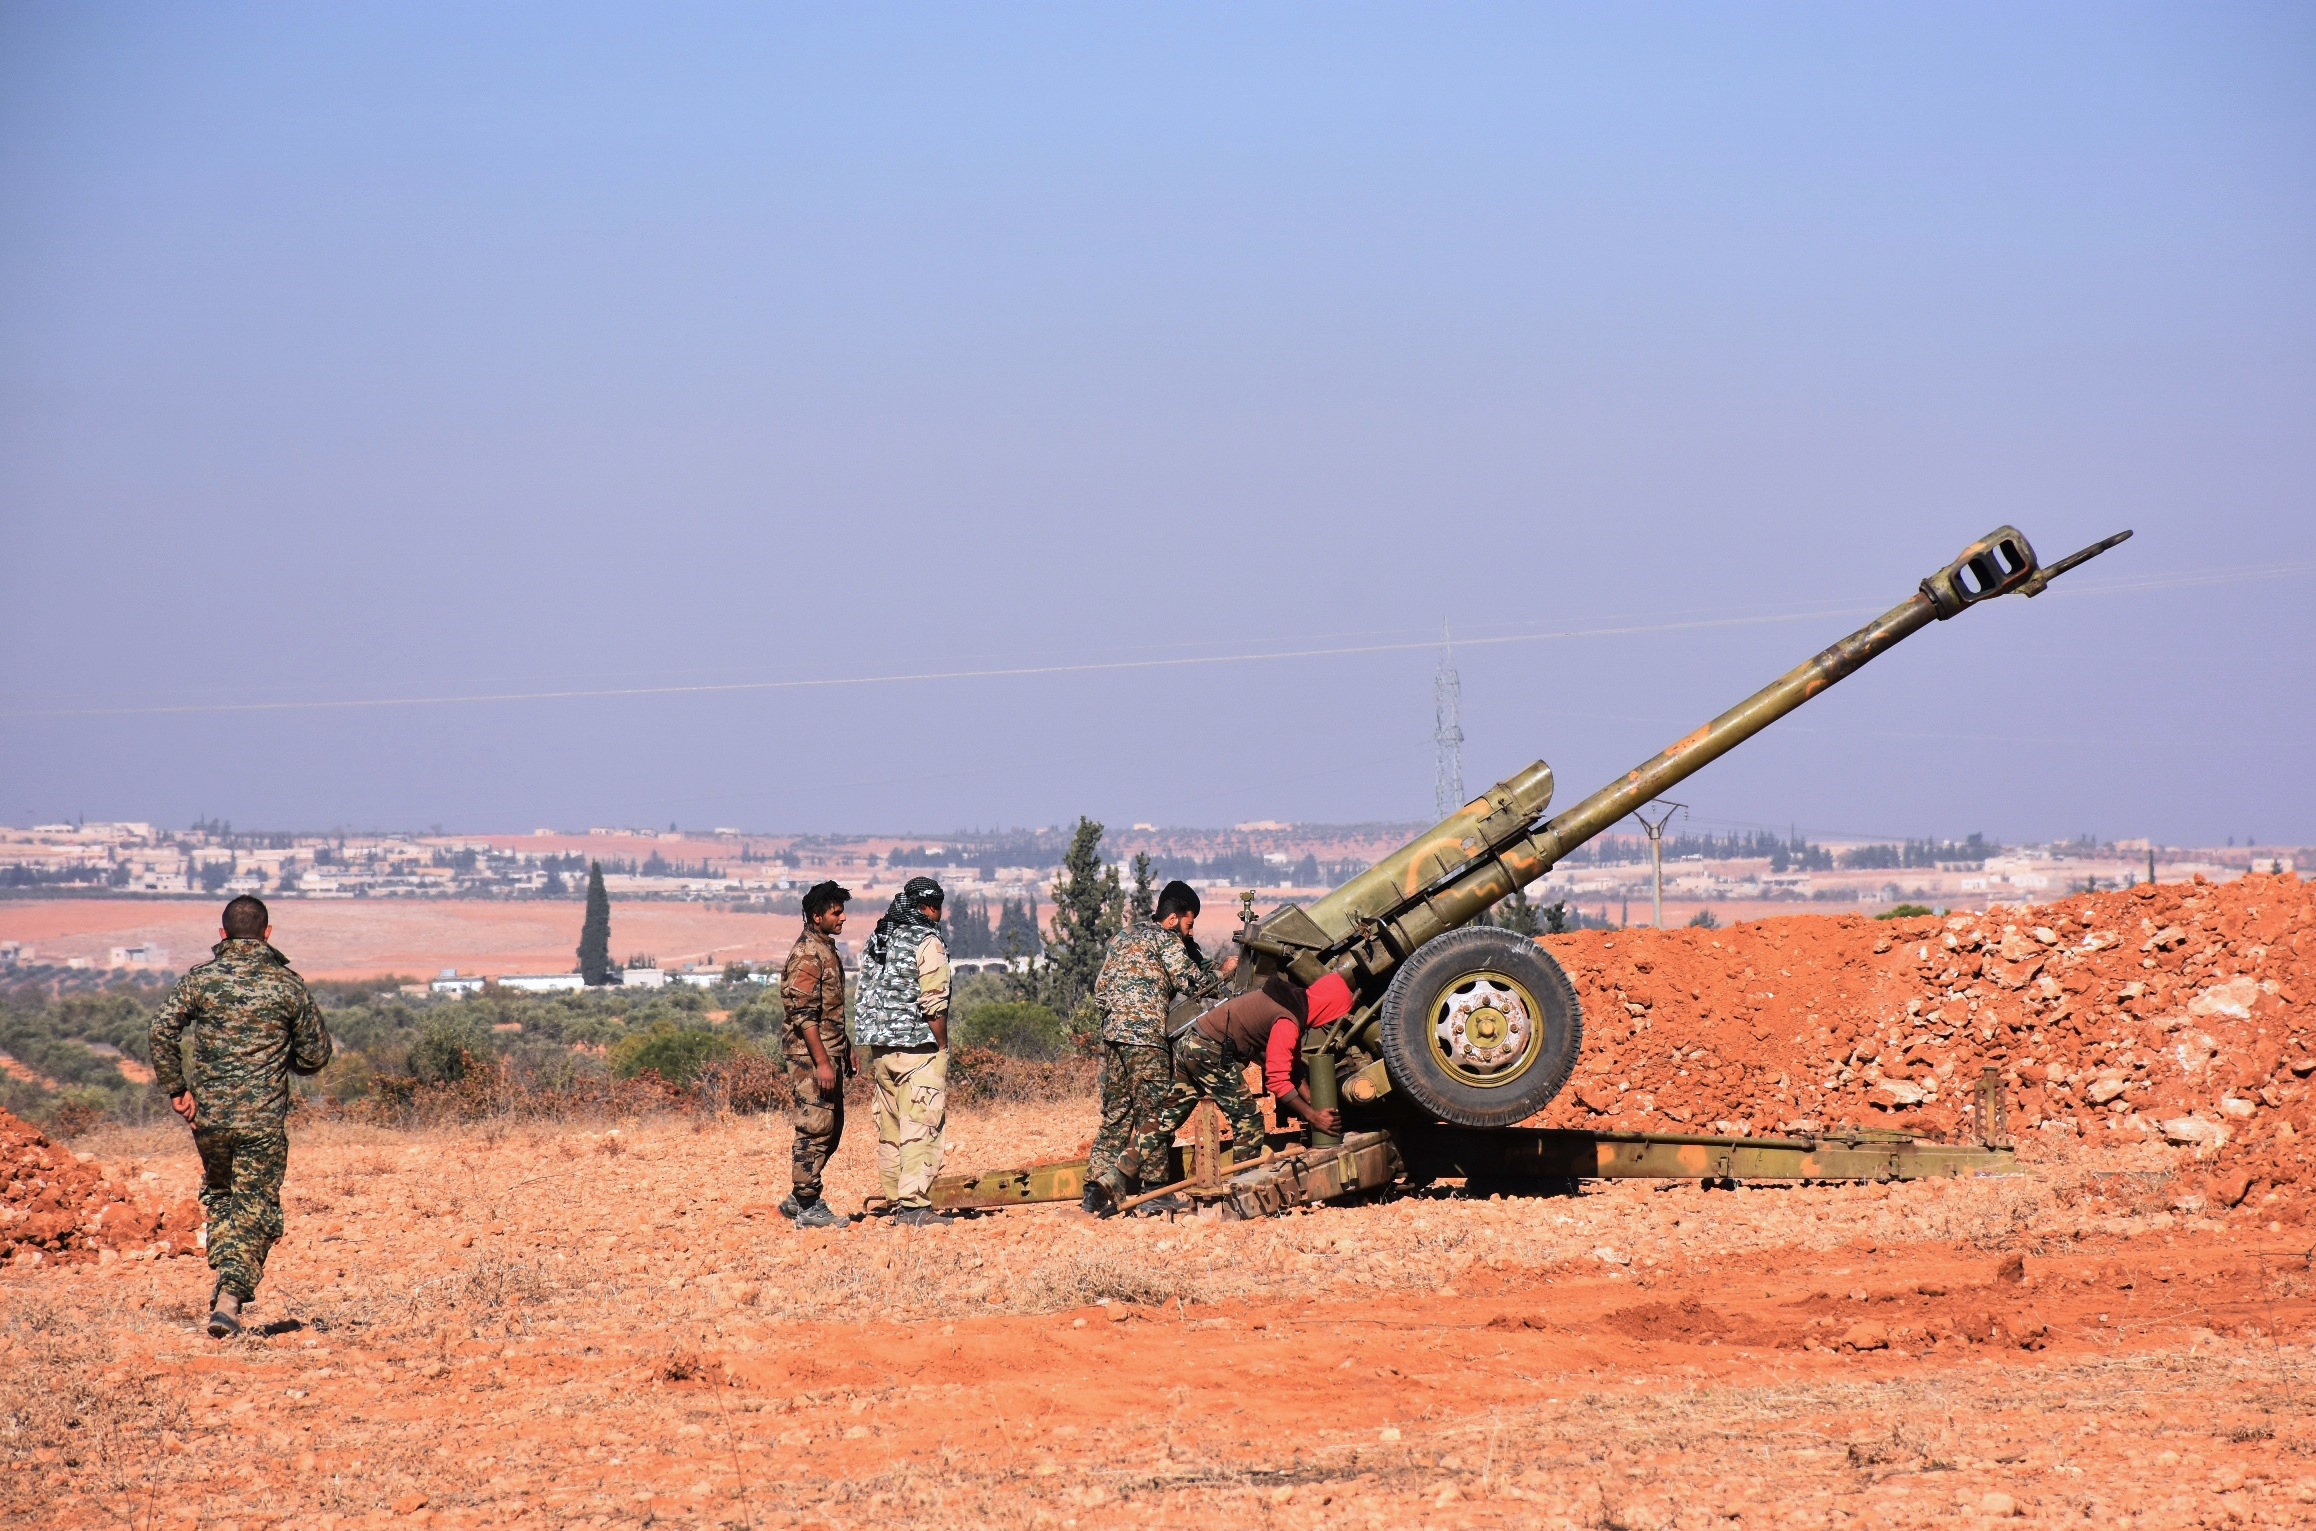 Syrian pro-government fighters fire a Russian 122mm howitzer gun as they advance in the recently recaptured village of Joubah during an offensive towards the area of Al-Bab in Aleppo province, on November 25, 2016